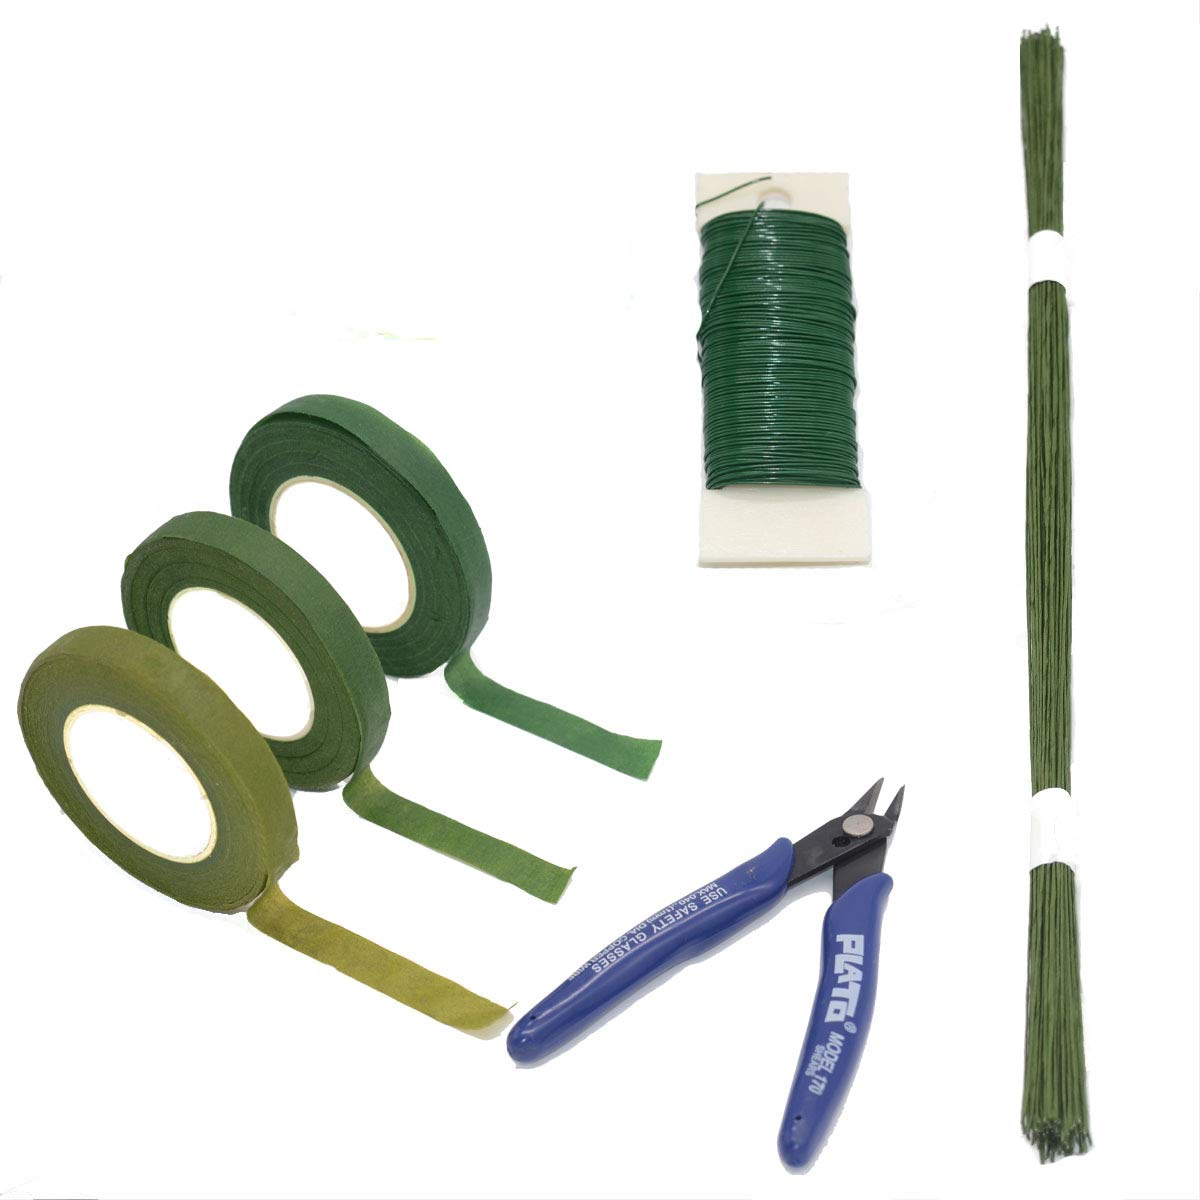 Floral Arrangement Kit Flower Supplies Tool with Wire Cutter Floral Tape Green Floral Steam Wire 22 Gauge and 26 Gauge Green for Bouquet Stem Wrap Florist